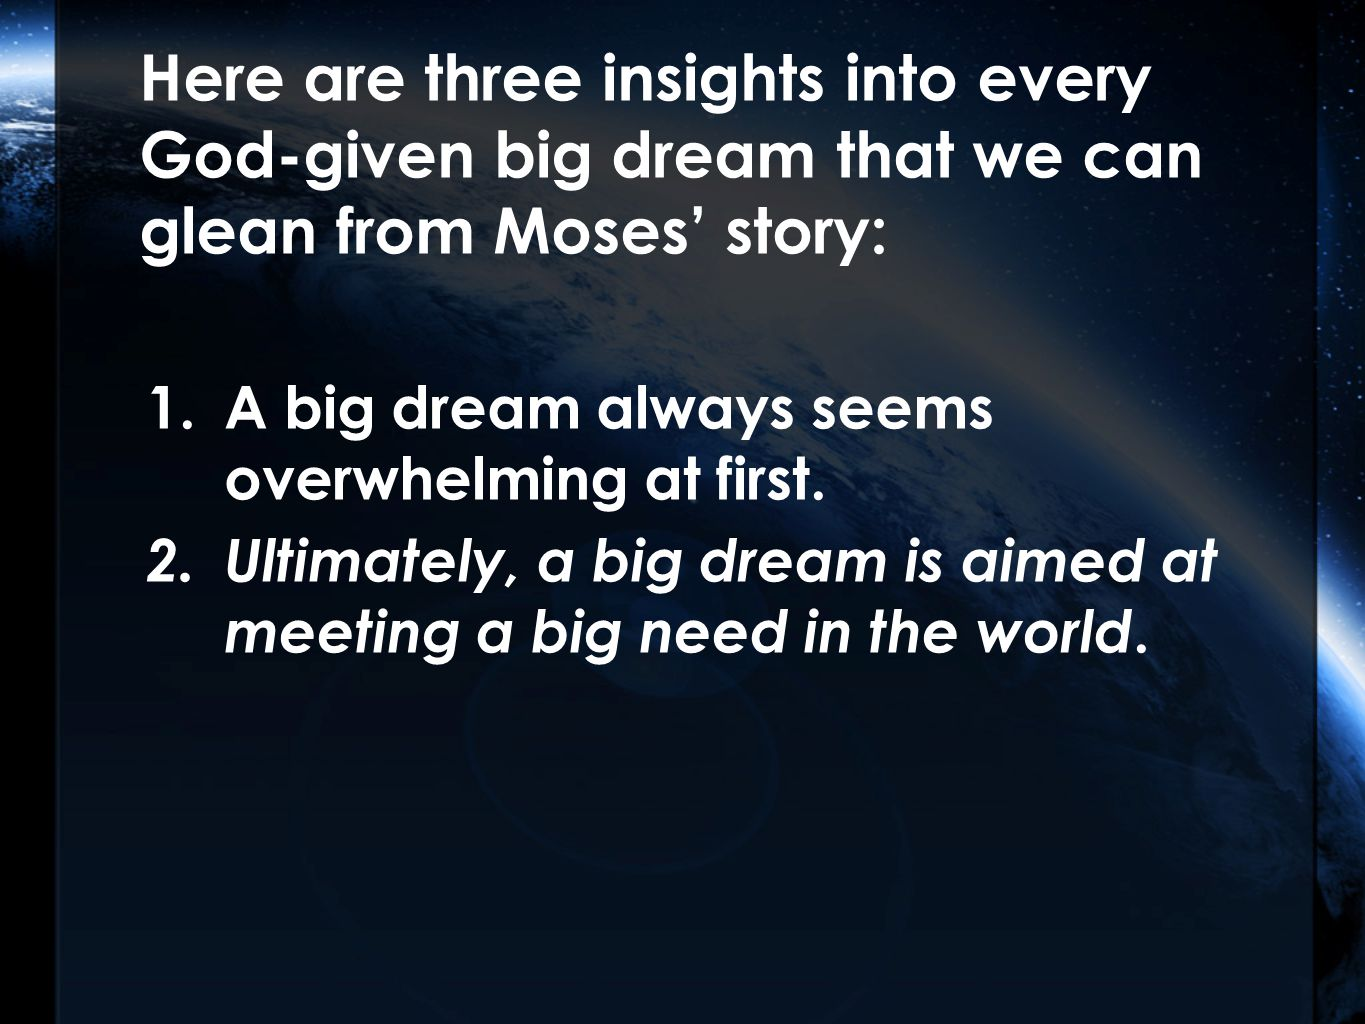 Here are three insights into every God-given big dream that we can glean from Moses' story: 1.A big dream always seems overwhelming at first.